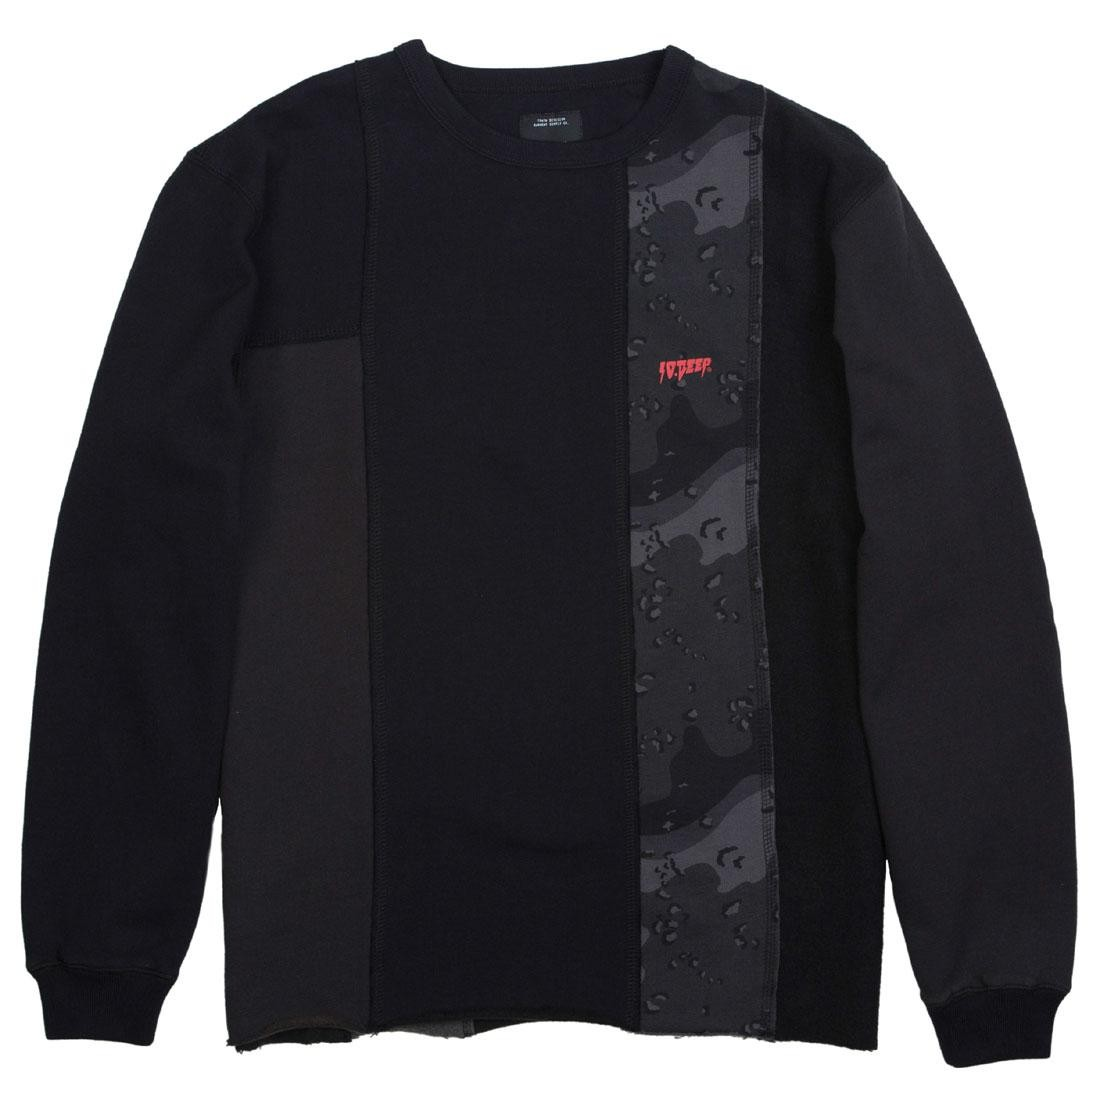 10 DE高橋海人 私服 10DEEP テンディープ MEN UNIFICATION CHOPPED CREWNECK SWEATER